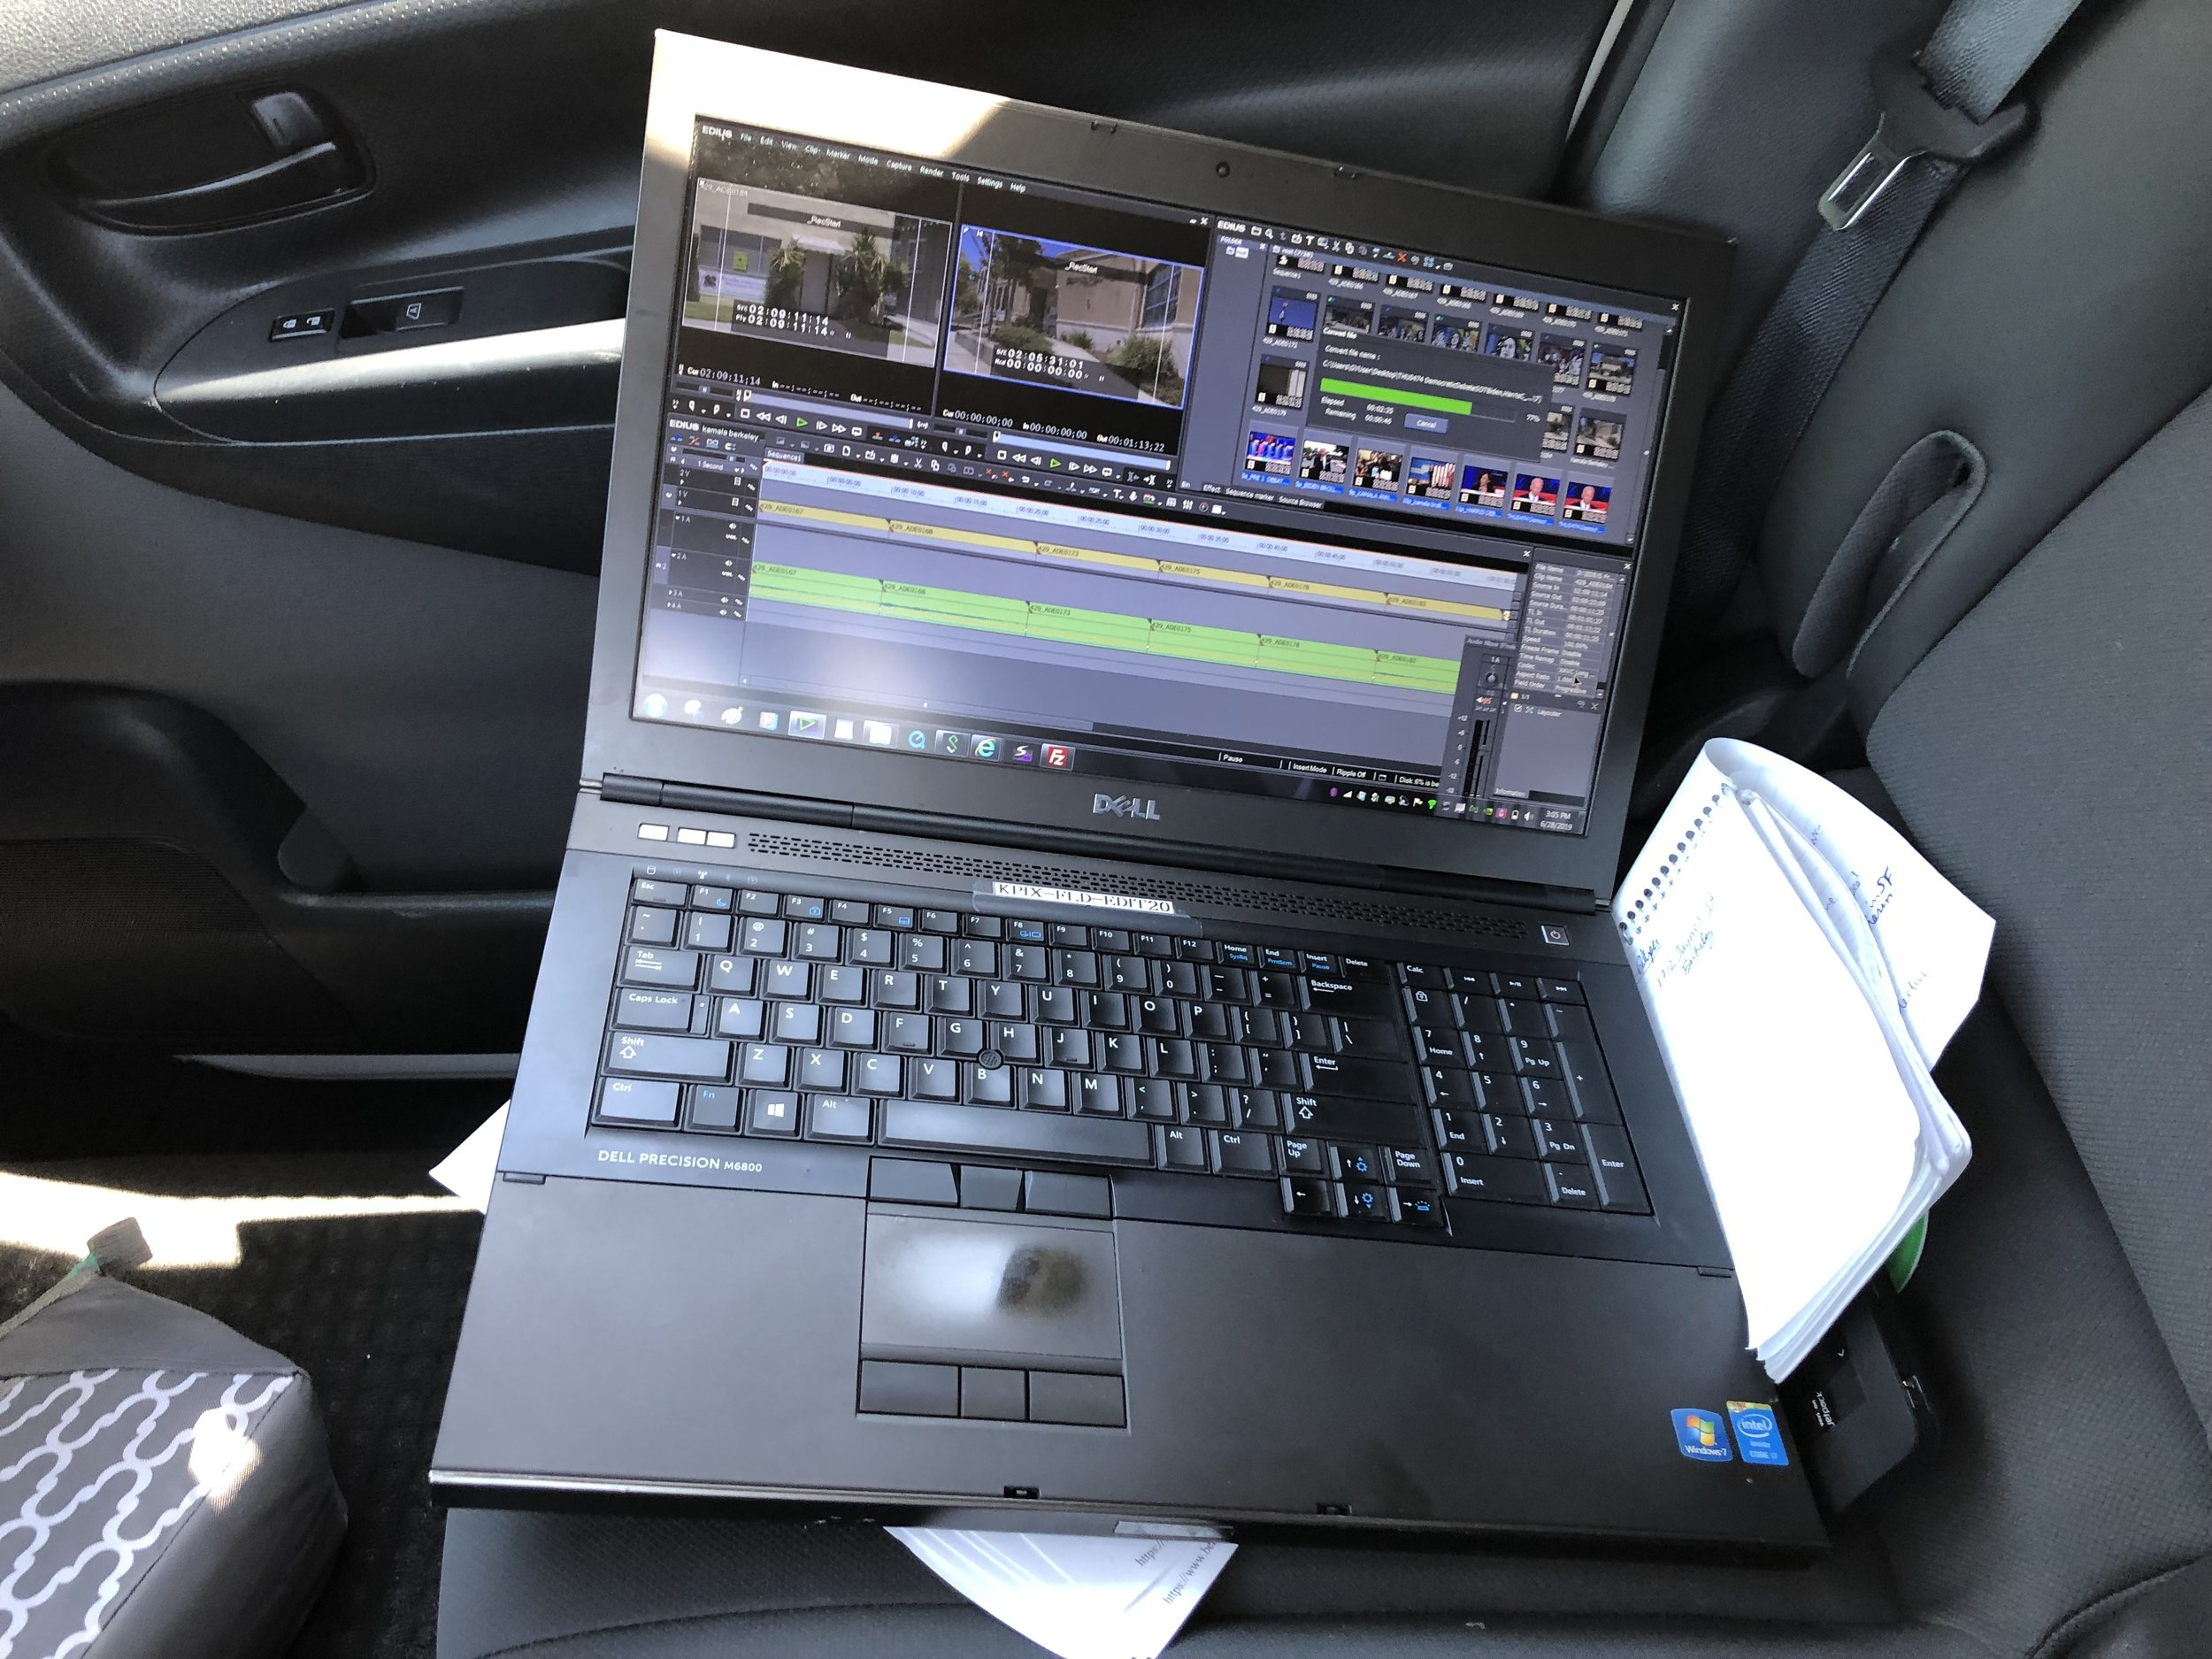 Feeding video back to the station for the 2 p.m. streaming newscast over wi-fi as I'm driving to my next location. Another way technology makes doing more possible.